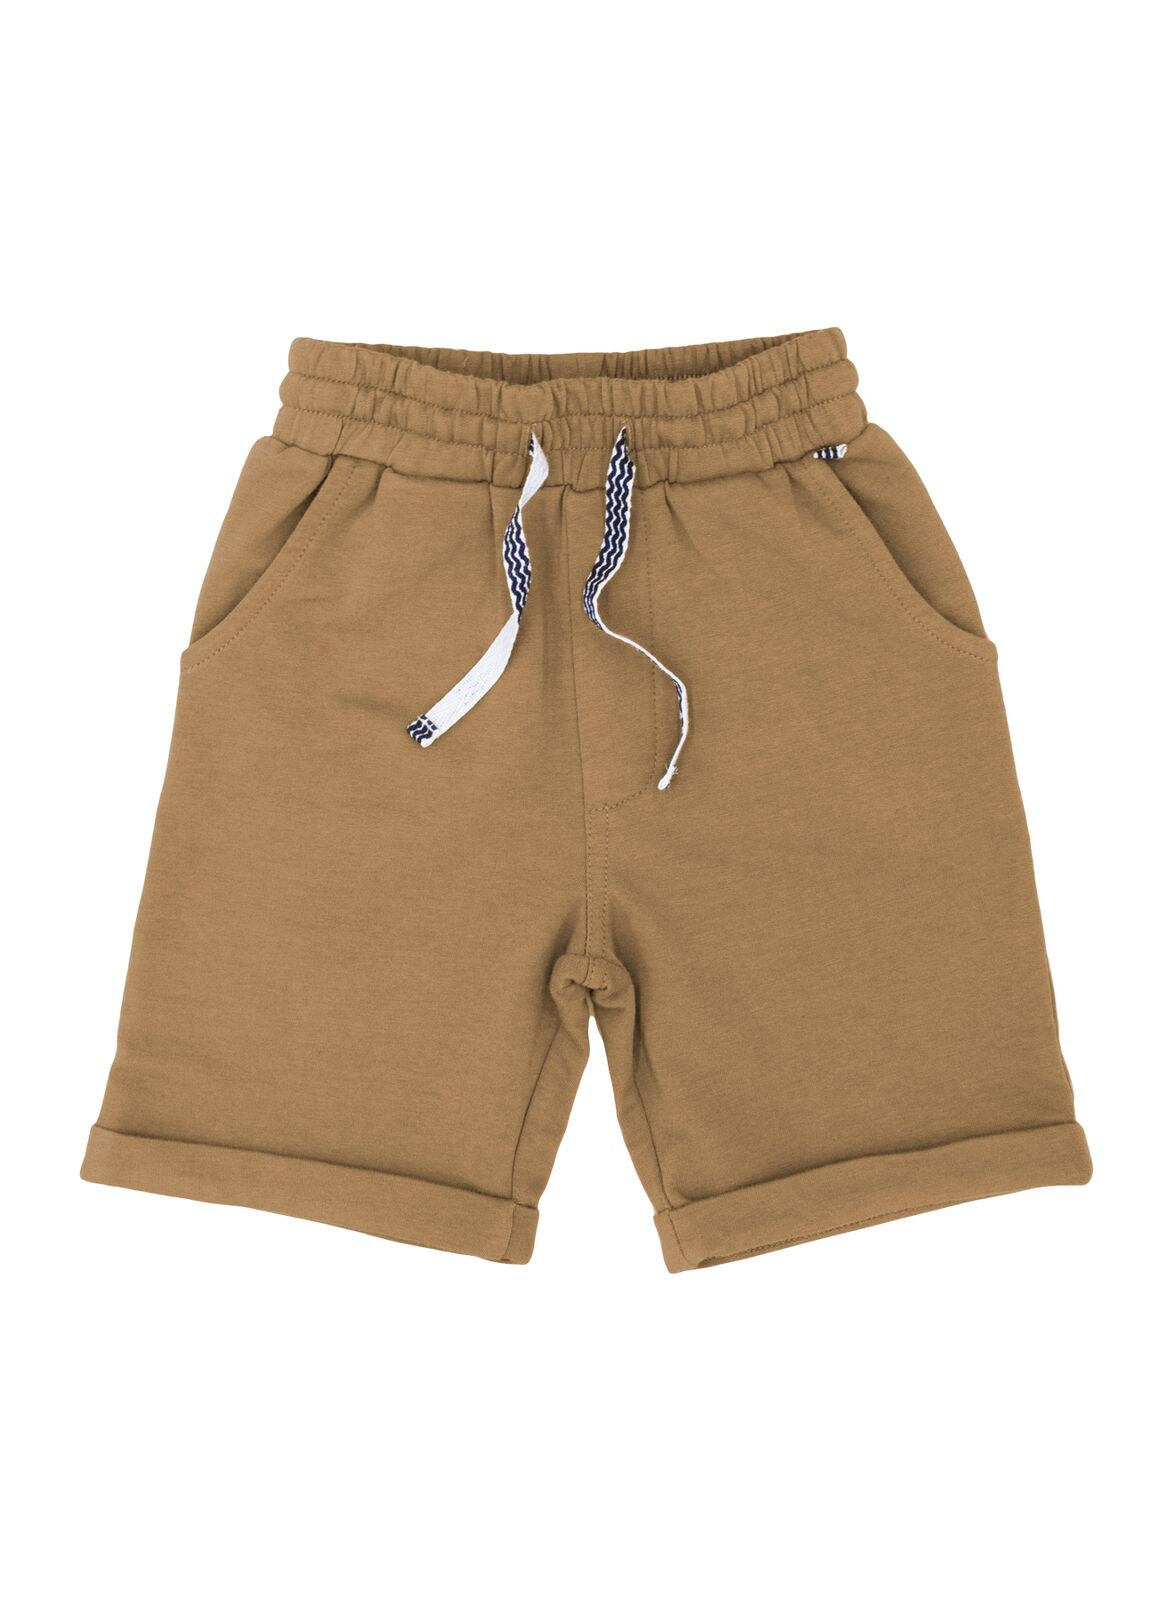 Feather 4 Arrow Low Tide Shorts in Island Sand | Sweet Threads